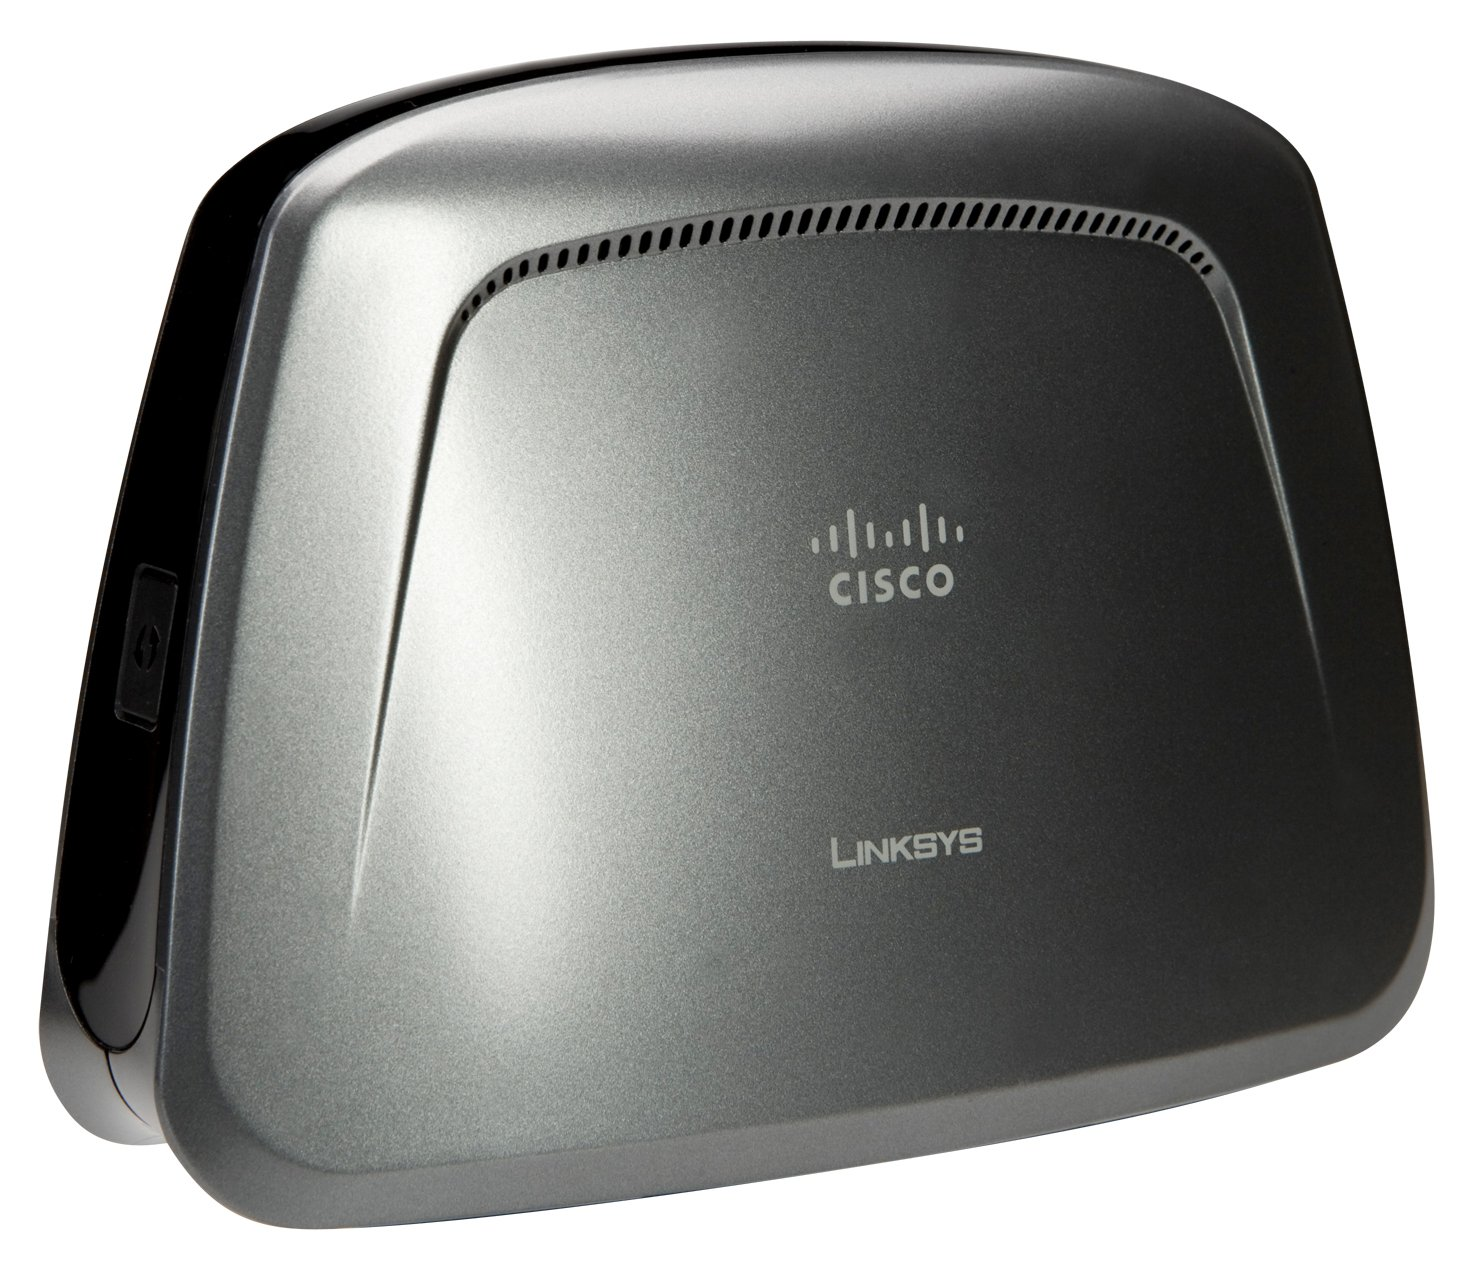 Cisco-Linksys WET610N Dual-Band Wireless-N Gaming and Video Adapter  (Discontinued by Manufacturer): Amazon.ca: Computers & Tablets